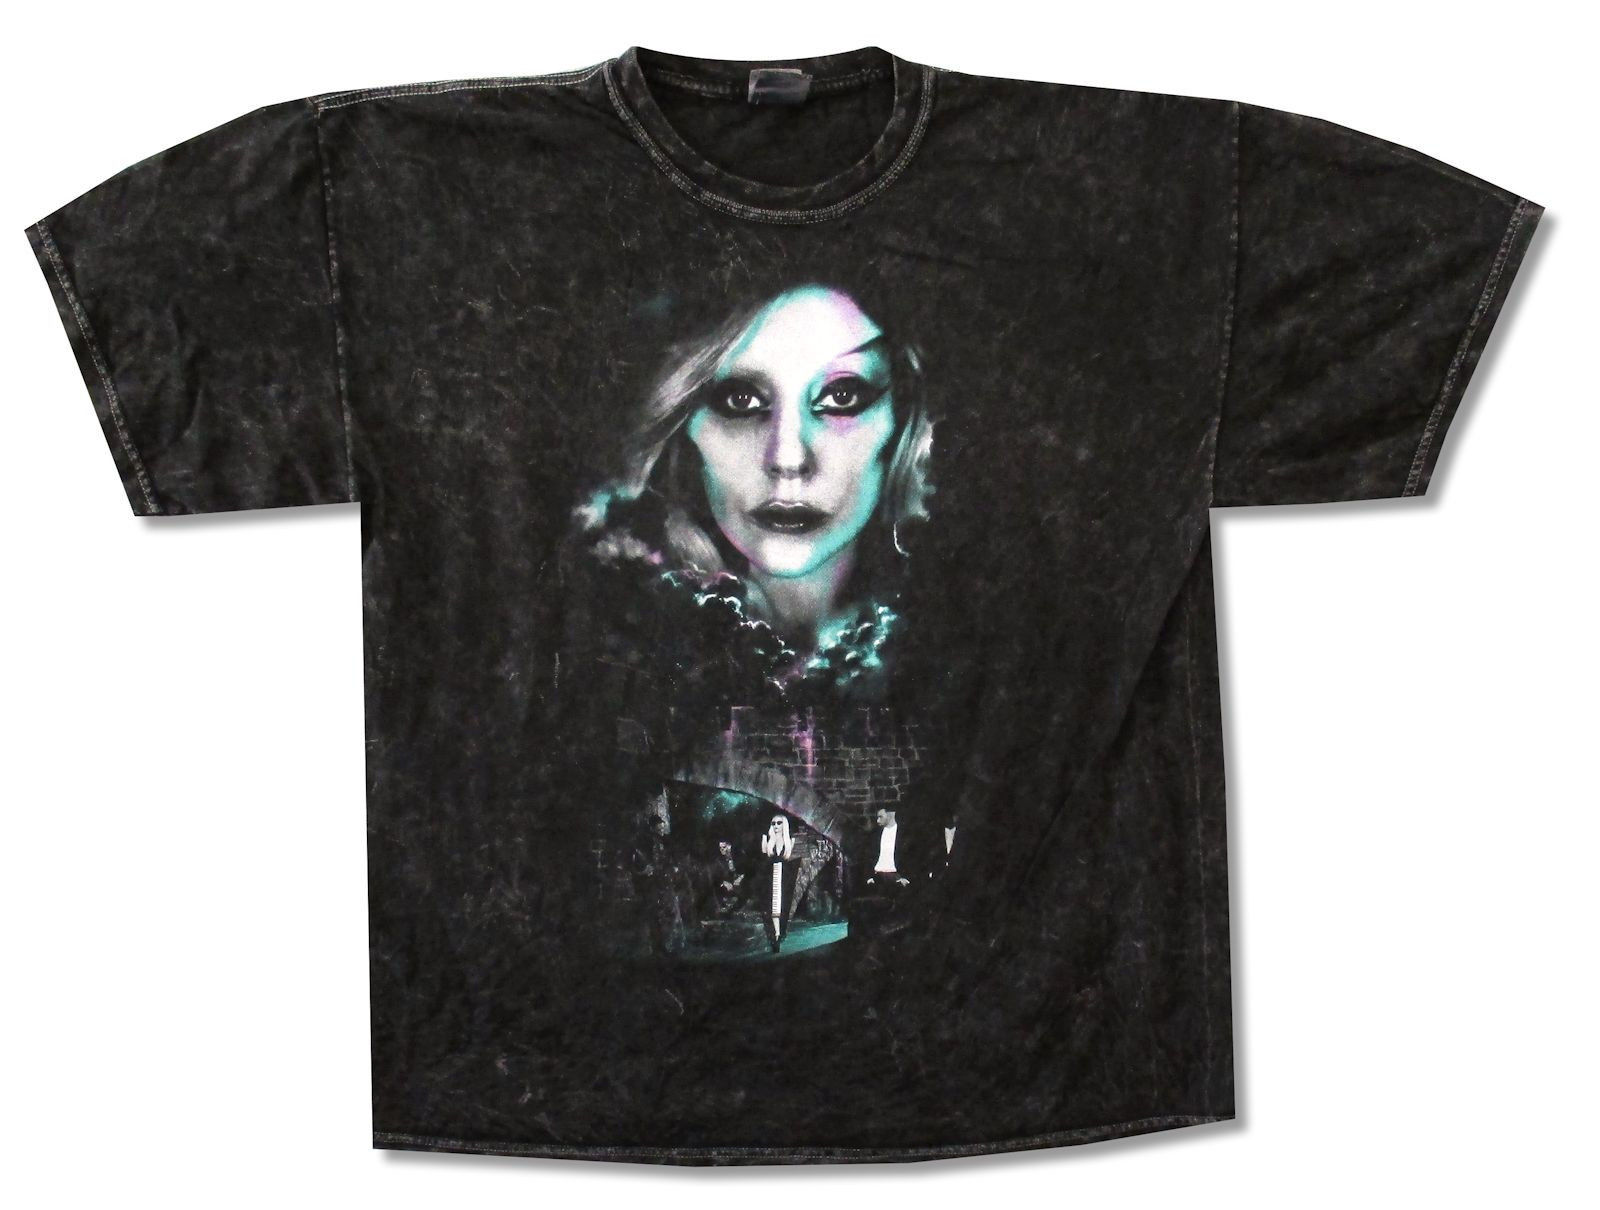 LADY GAGA CASTLE DYE BLACK STONEWASH T-SHIRT NEW OFFICIAL BORN THIS WAY TOUR